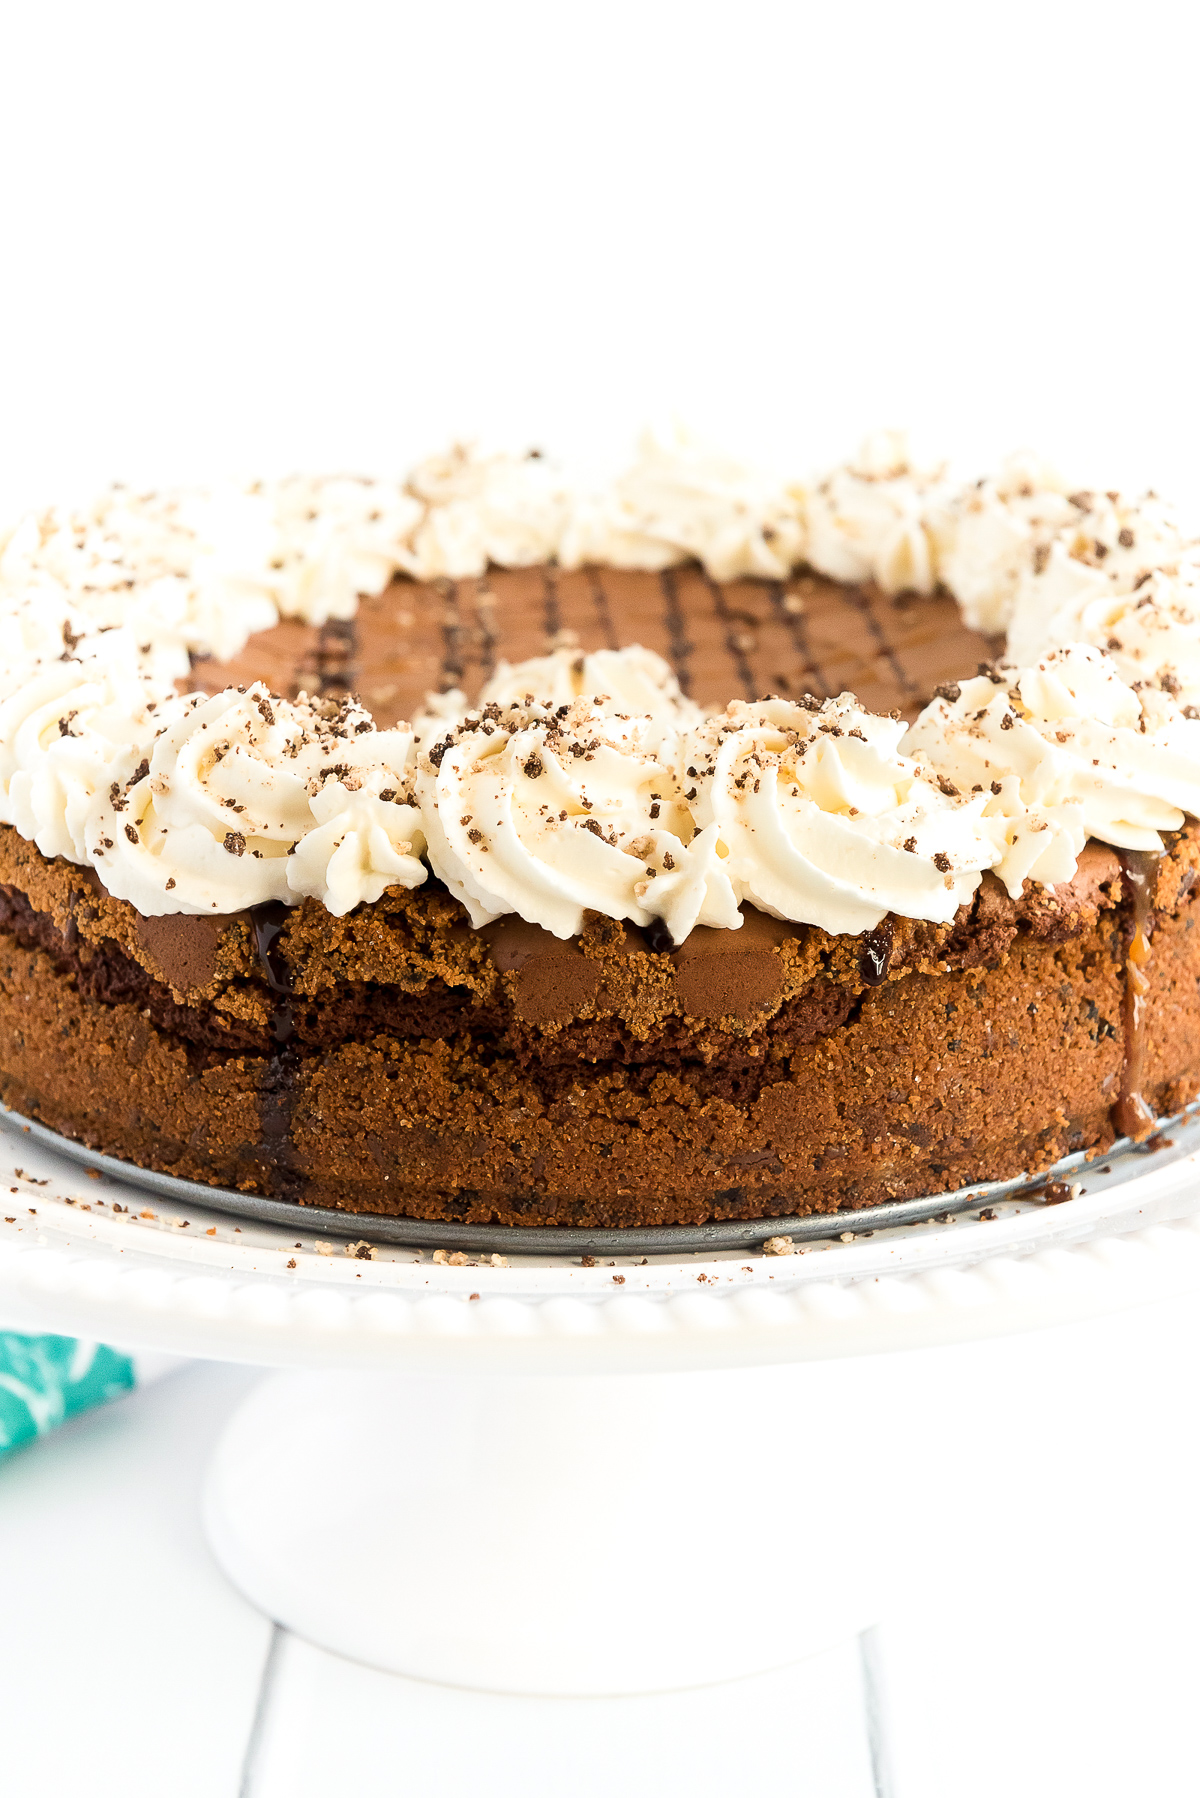 Brownie pie on a cake stand topped with chocolate and caramel drizzle and whipped cream.